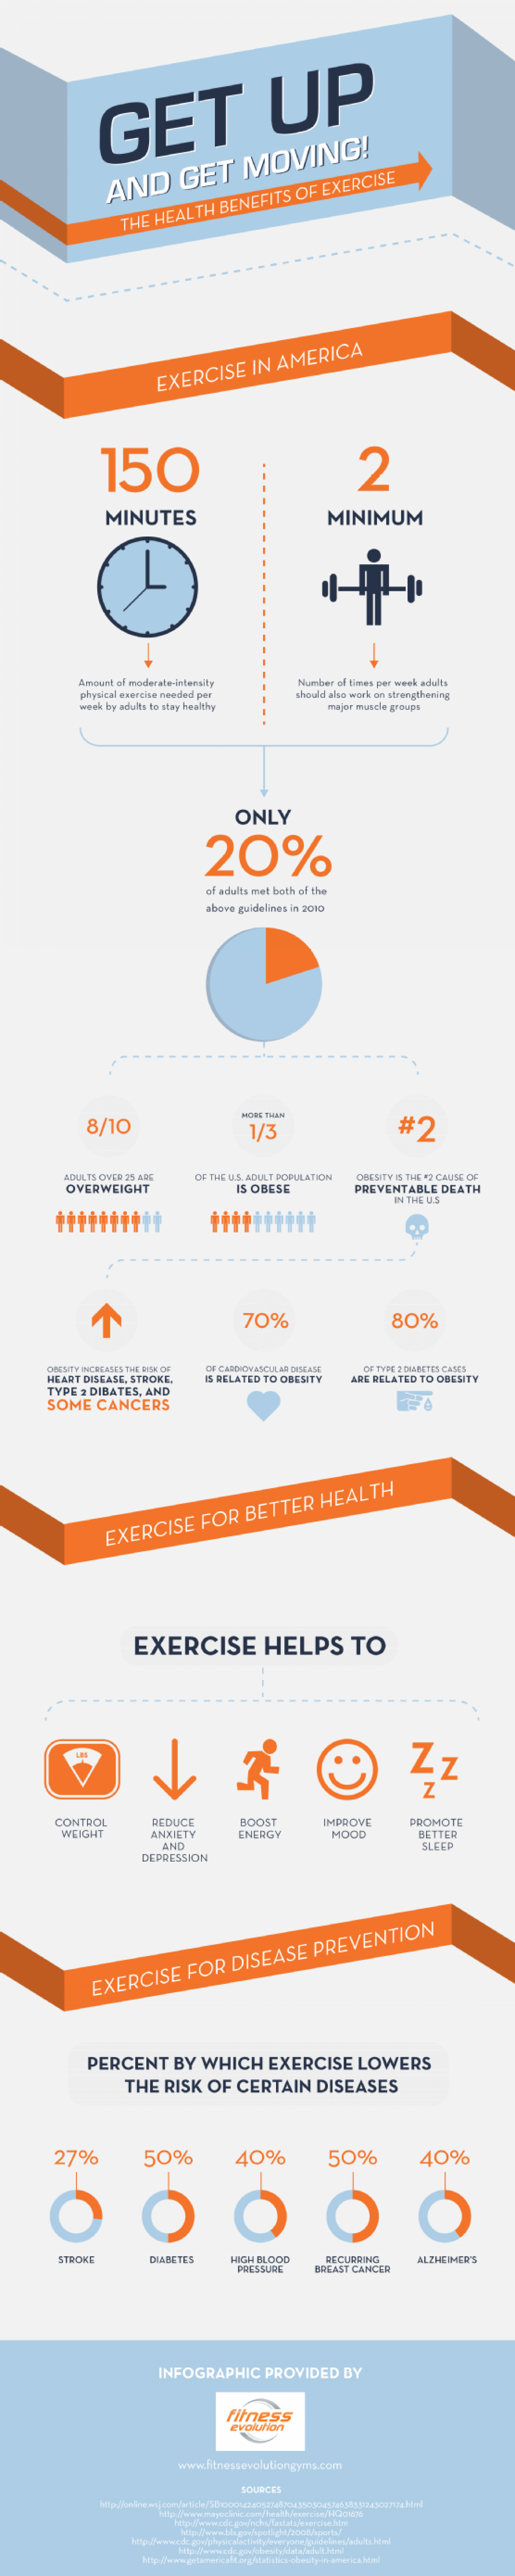 Get Up and Get Moving! The Health Benefits of Exercise  Infographic